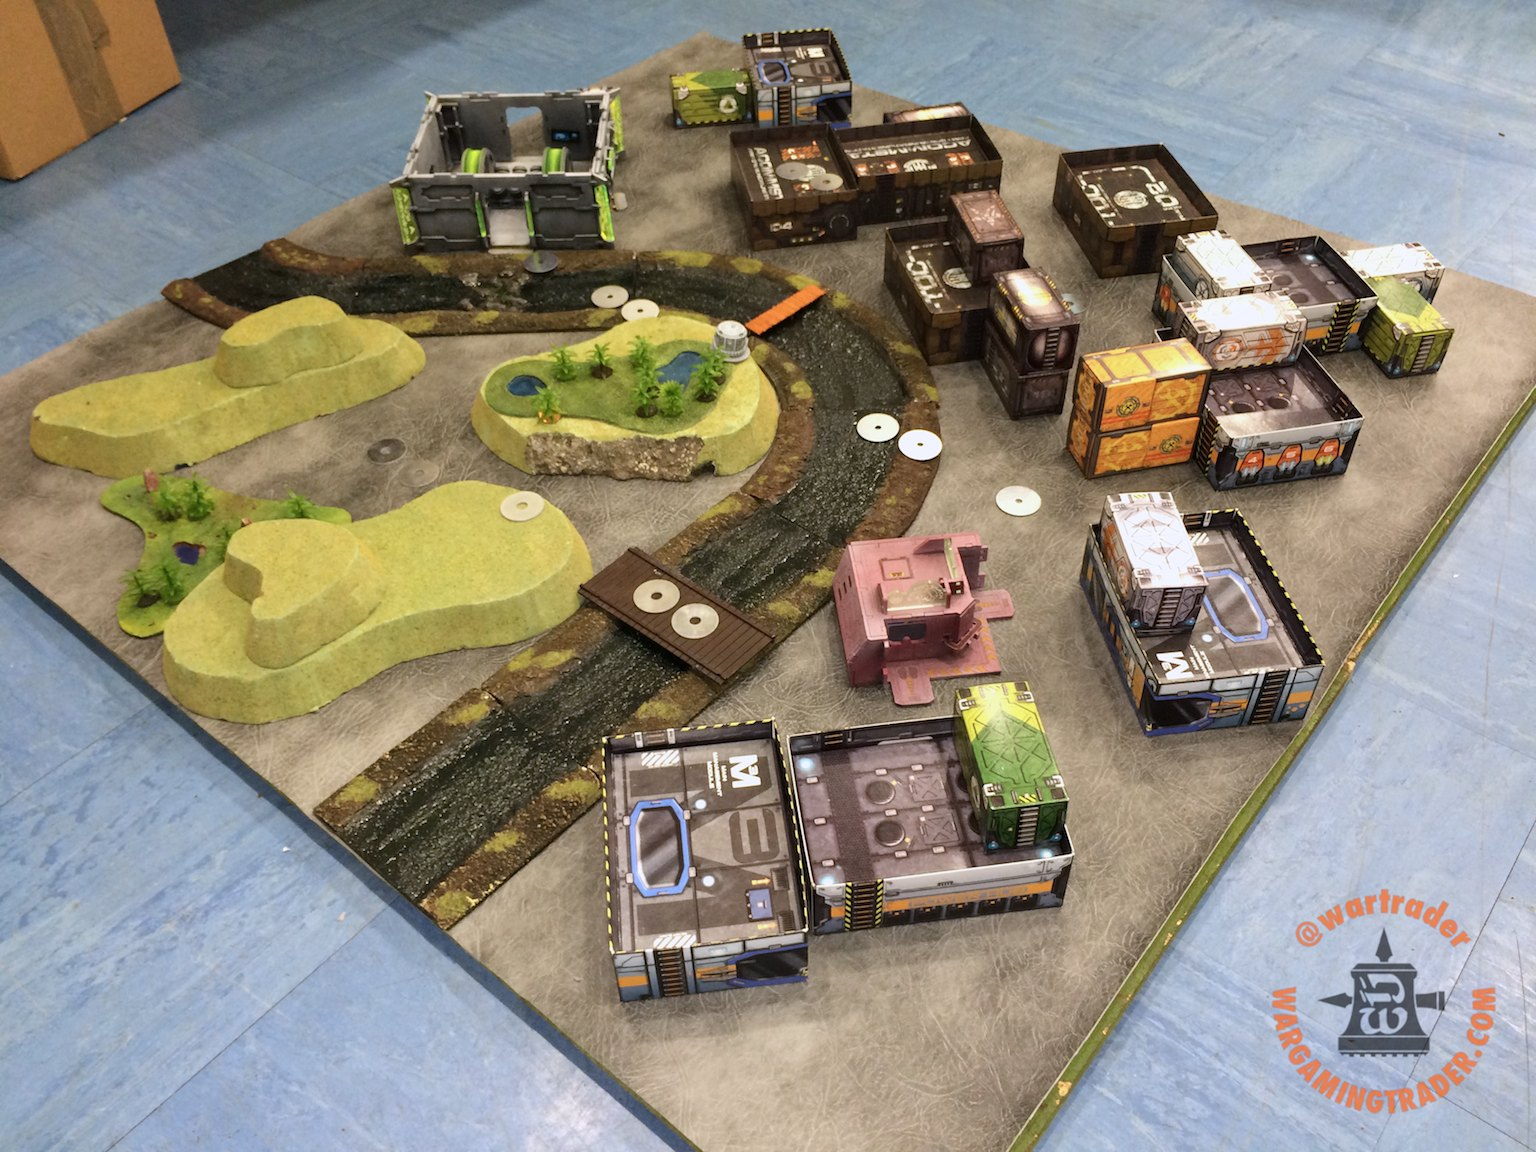 Table Layout Inspiration: Redux | Corvus Belli Community Forum